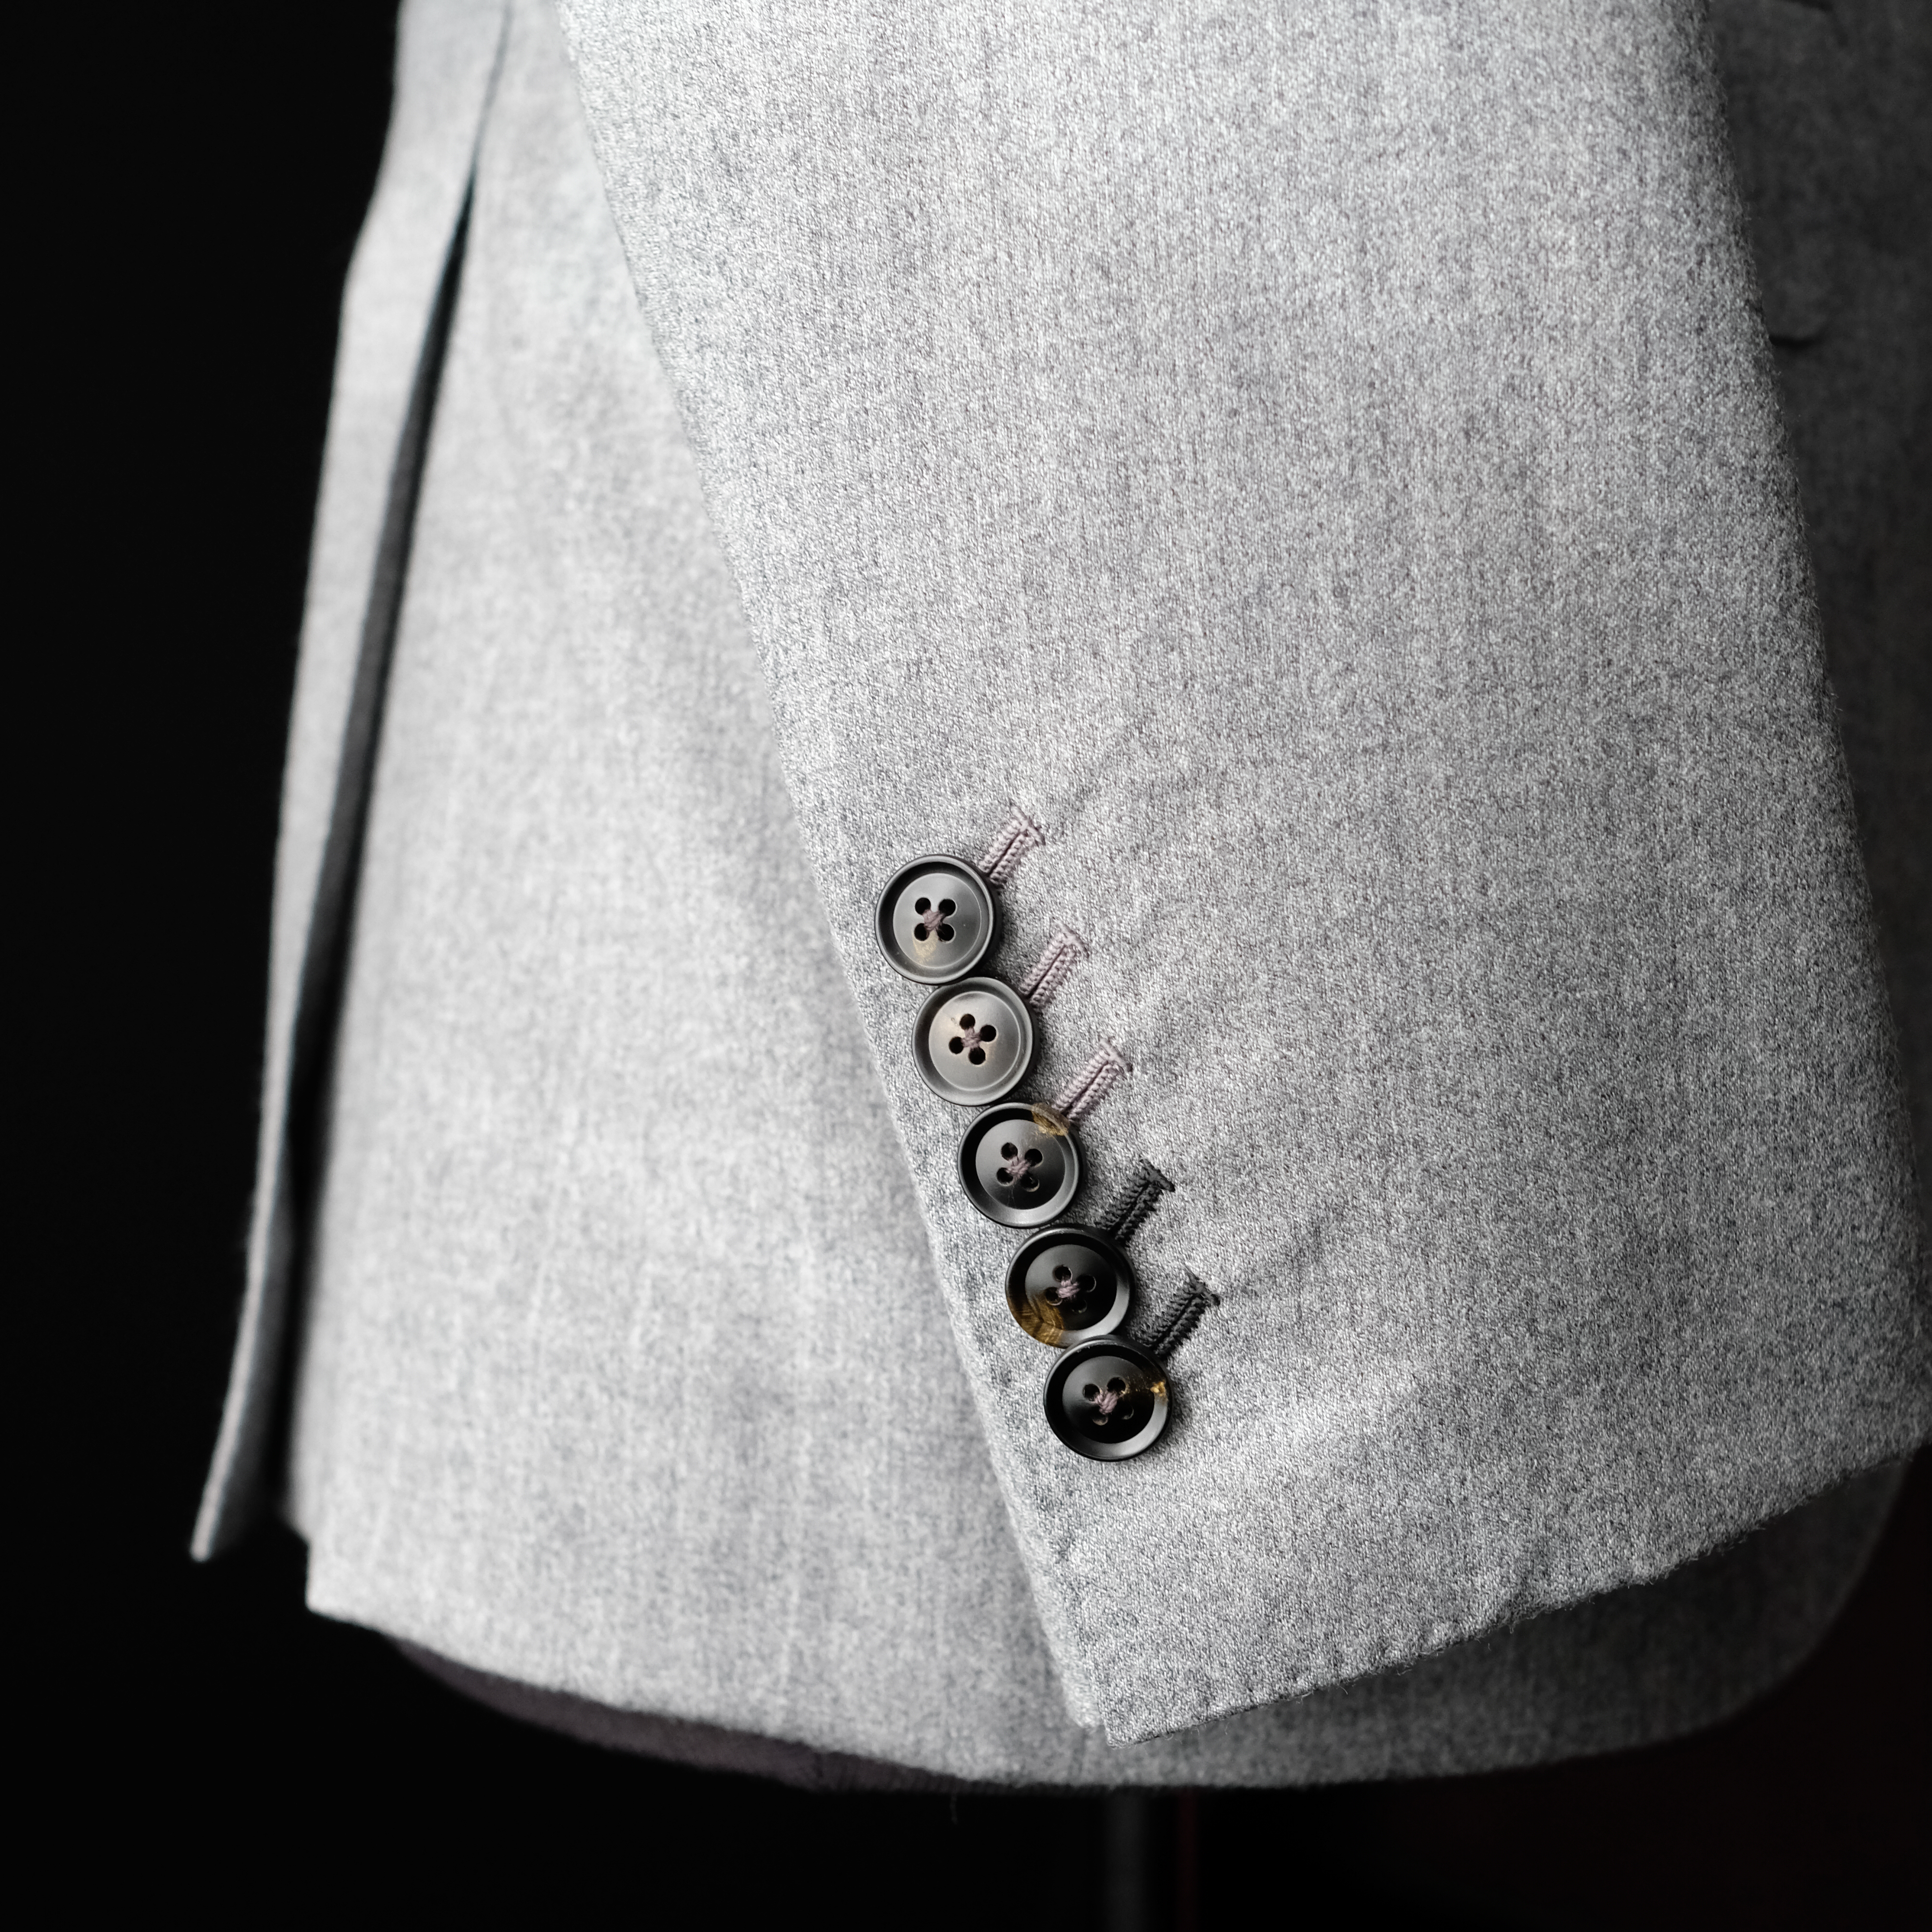 Functional sleeve buttons